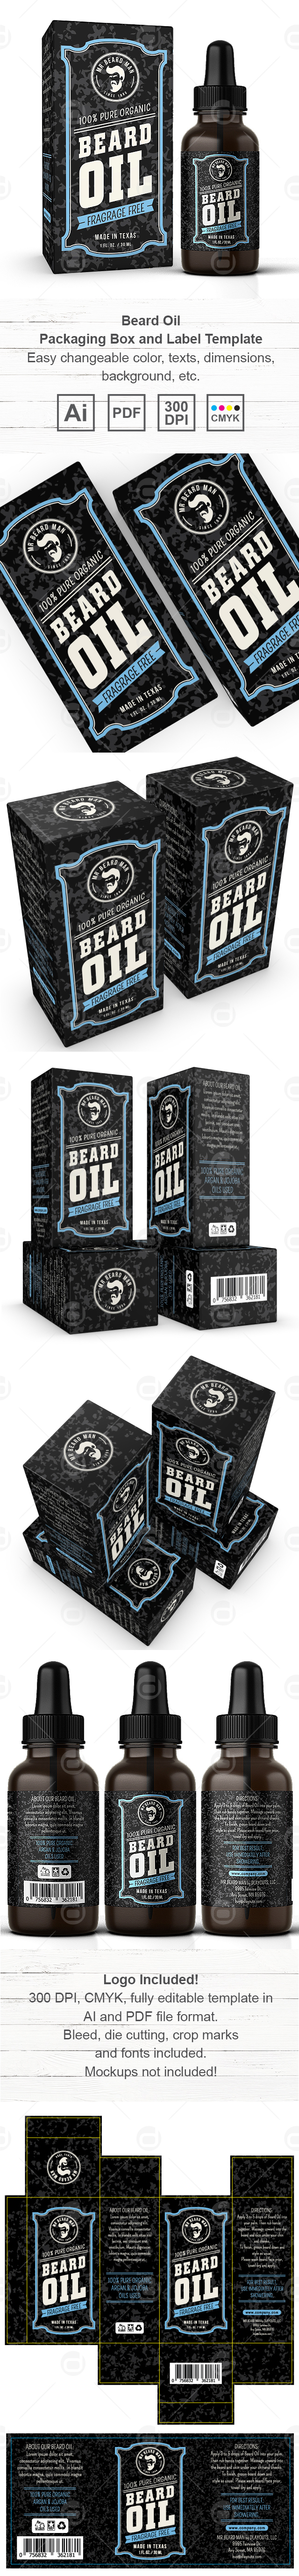 Beard Oil Packaging & Label Template